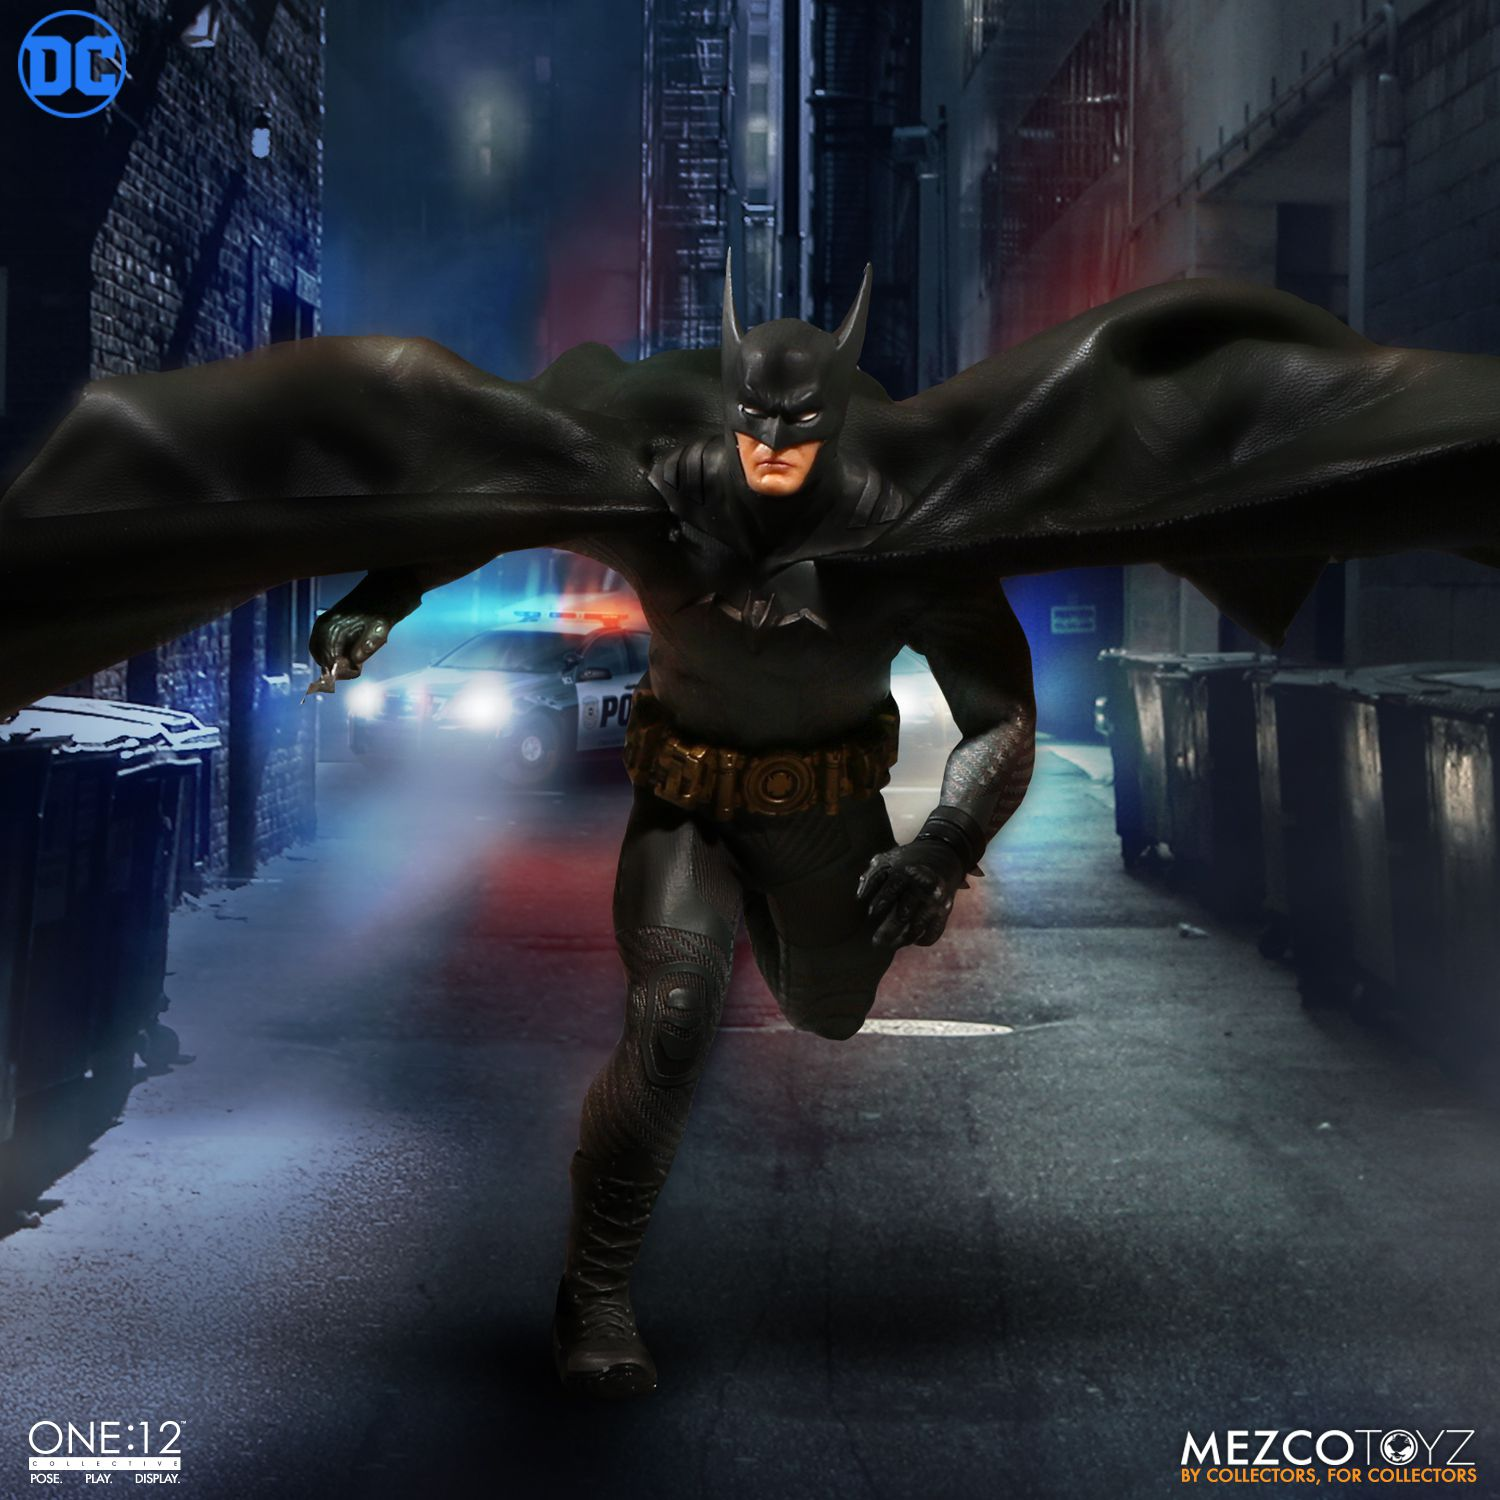 Mezco-Batman-Ascending-Knight-008.jpg